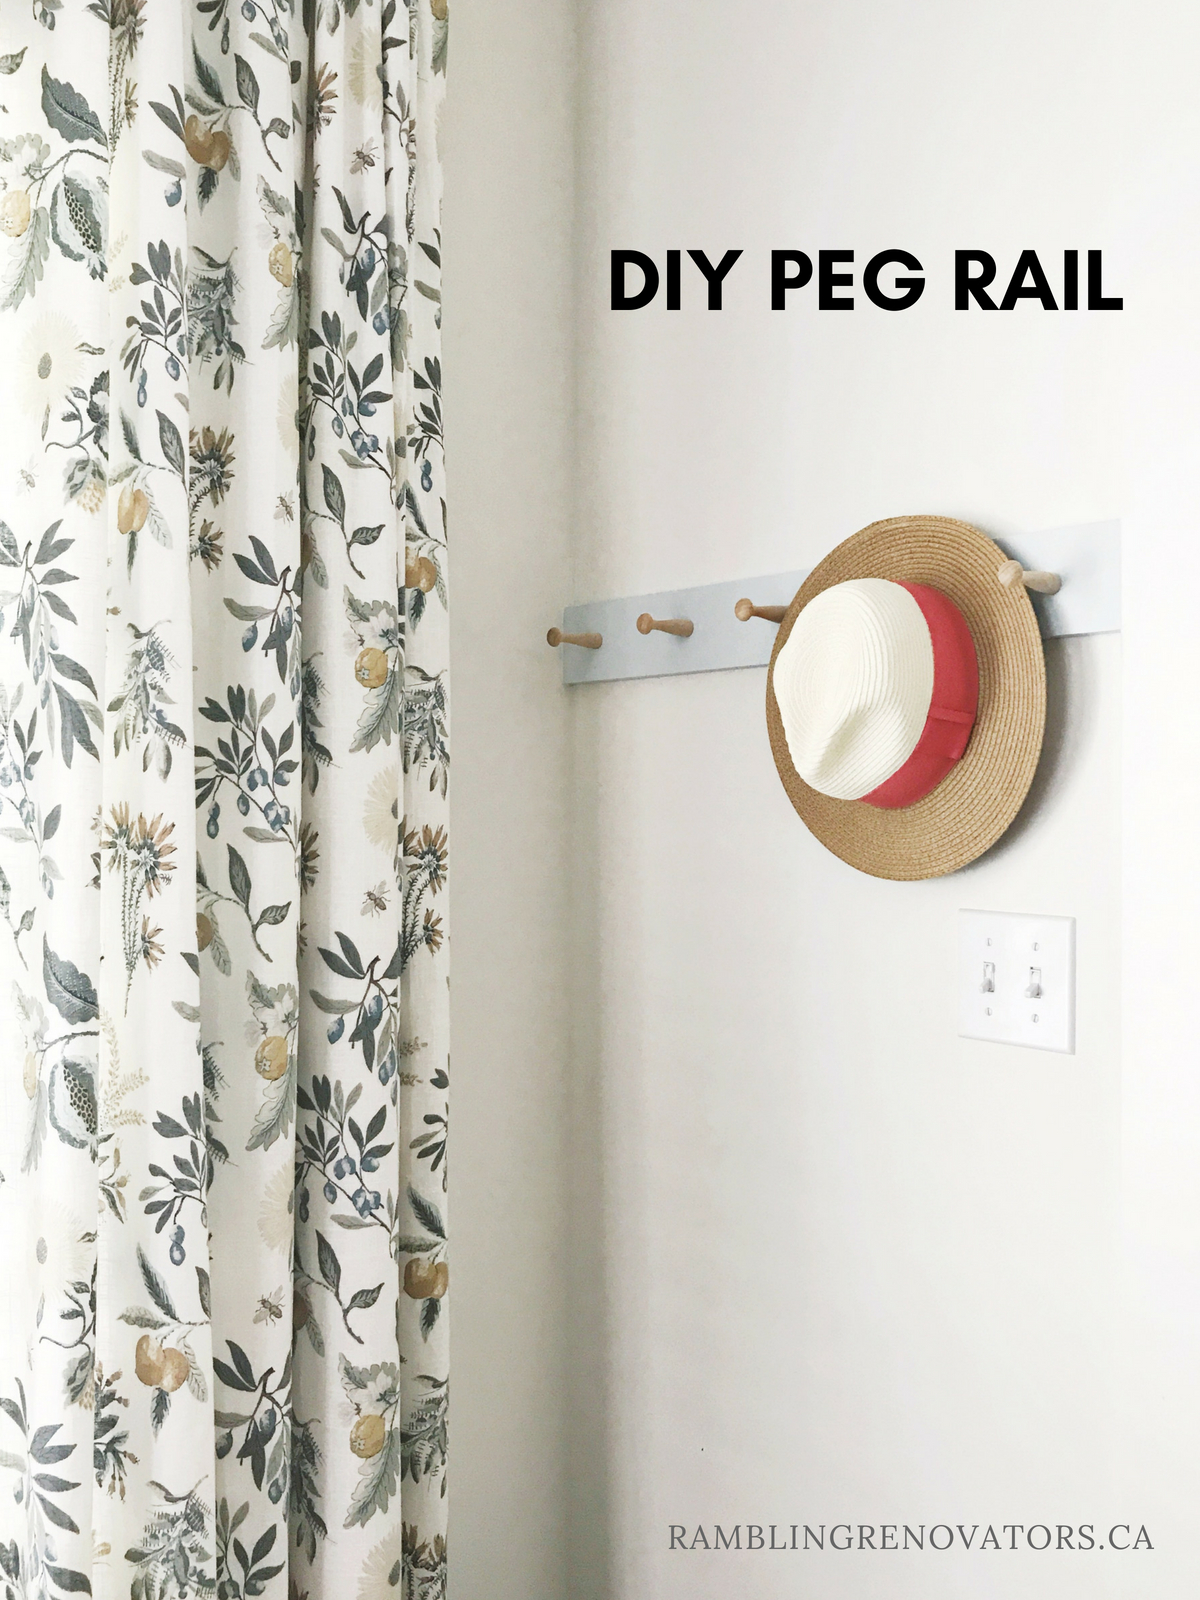 diy shaker peg rail, ramblingrenovators.ca